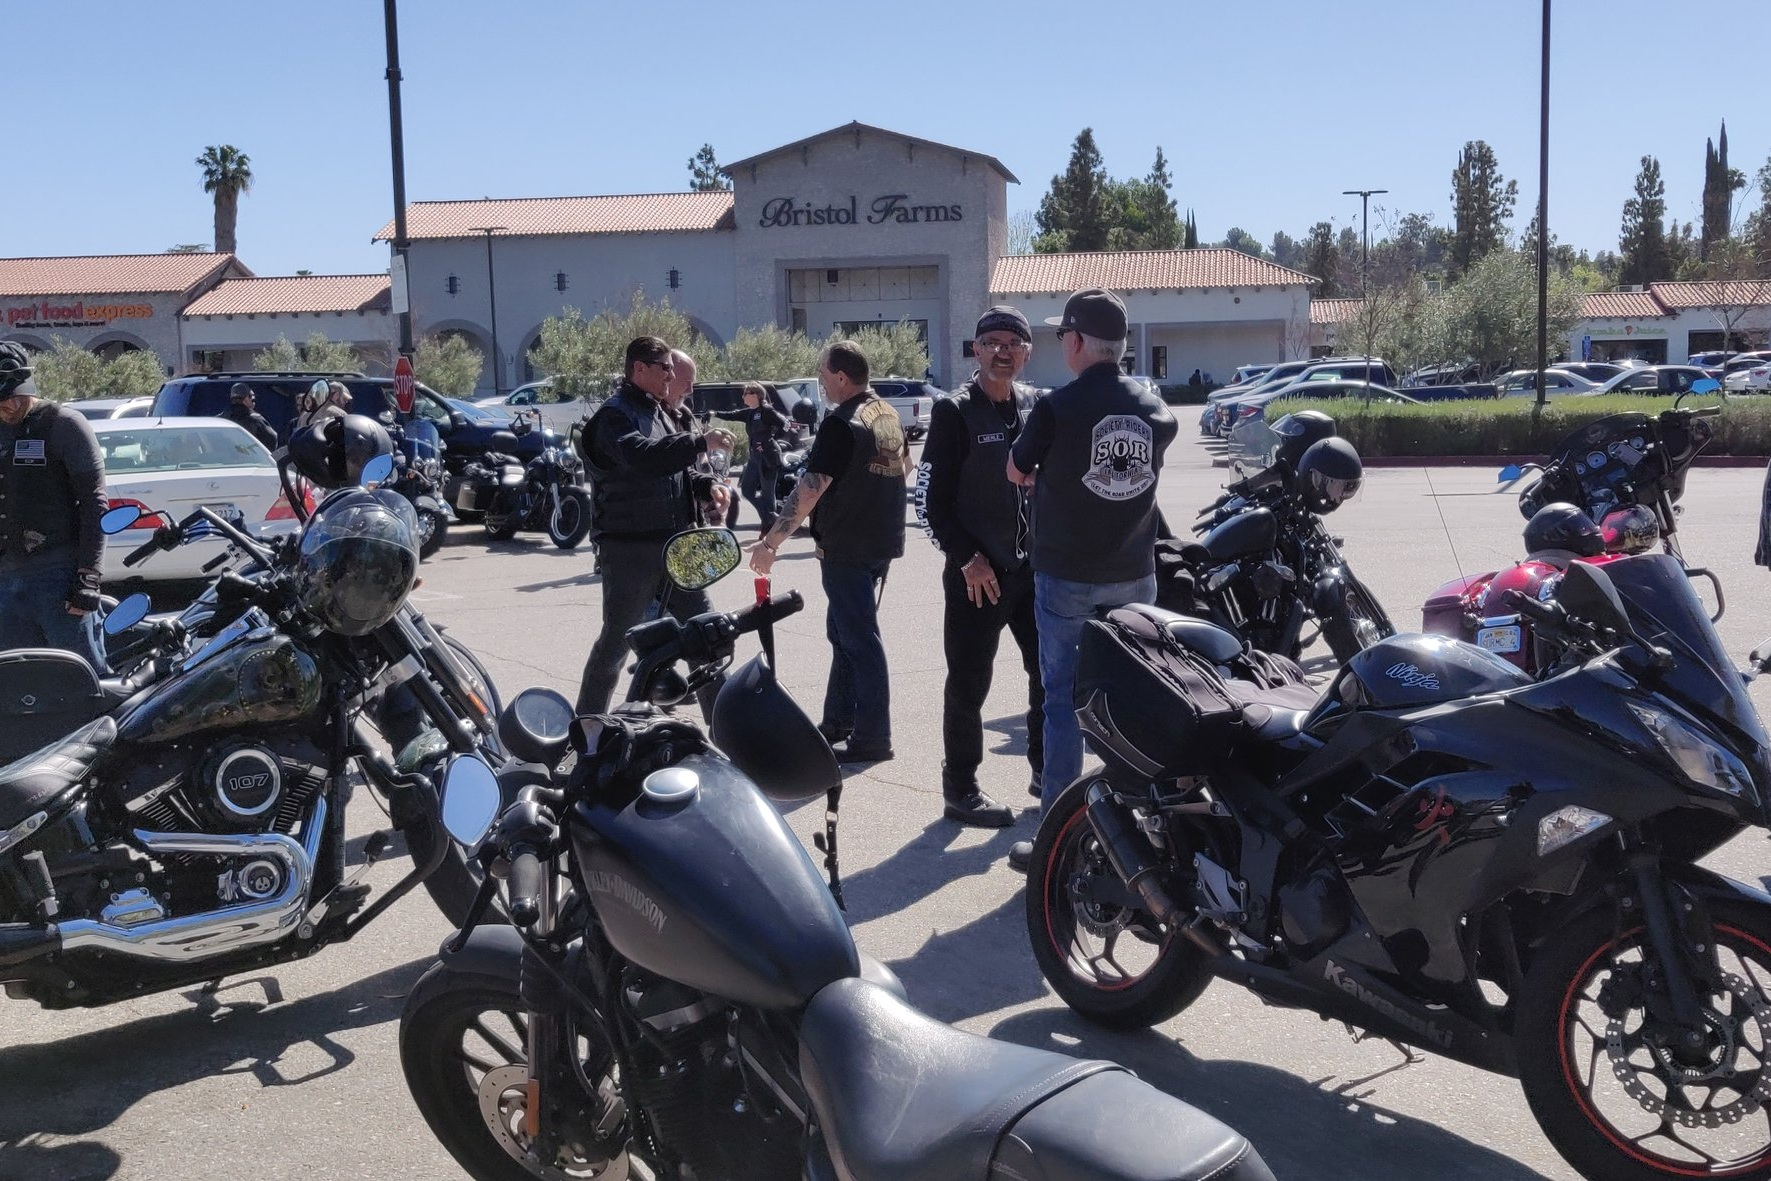 Attending a public group ride to meet participants willing to be interviewed